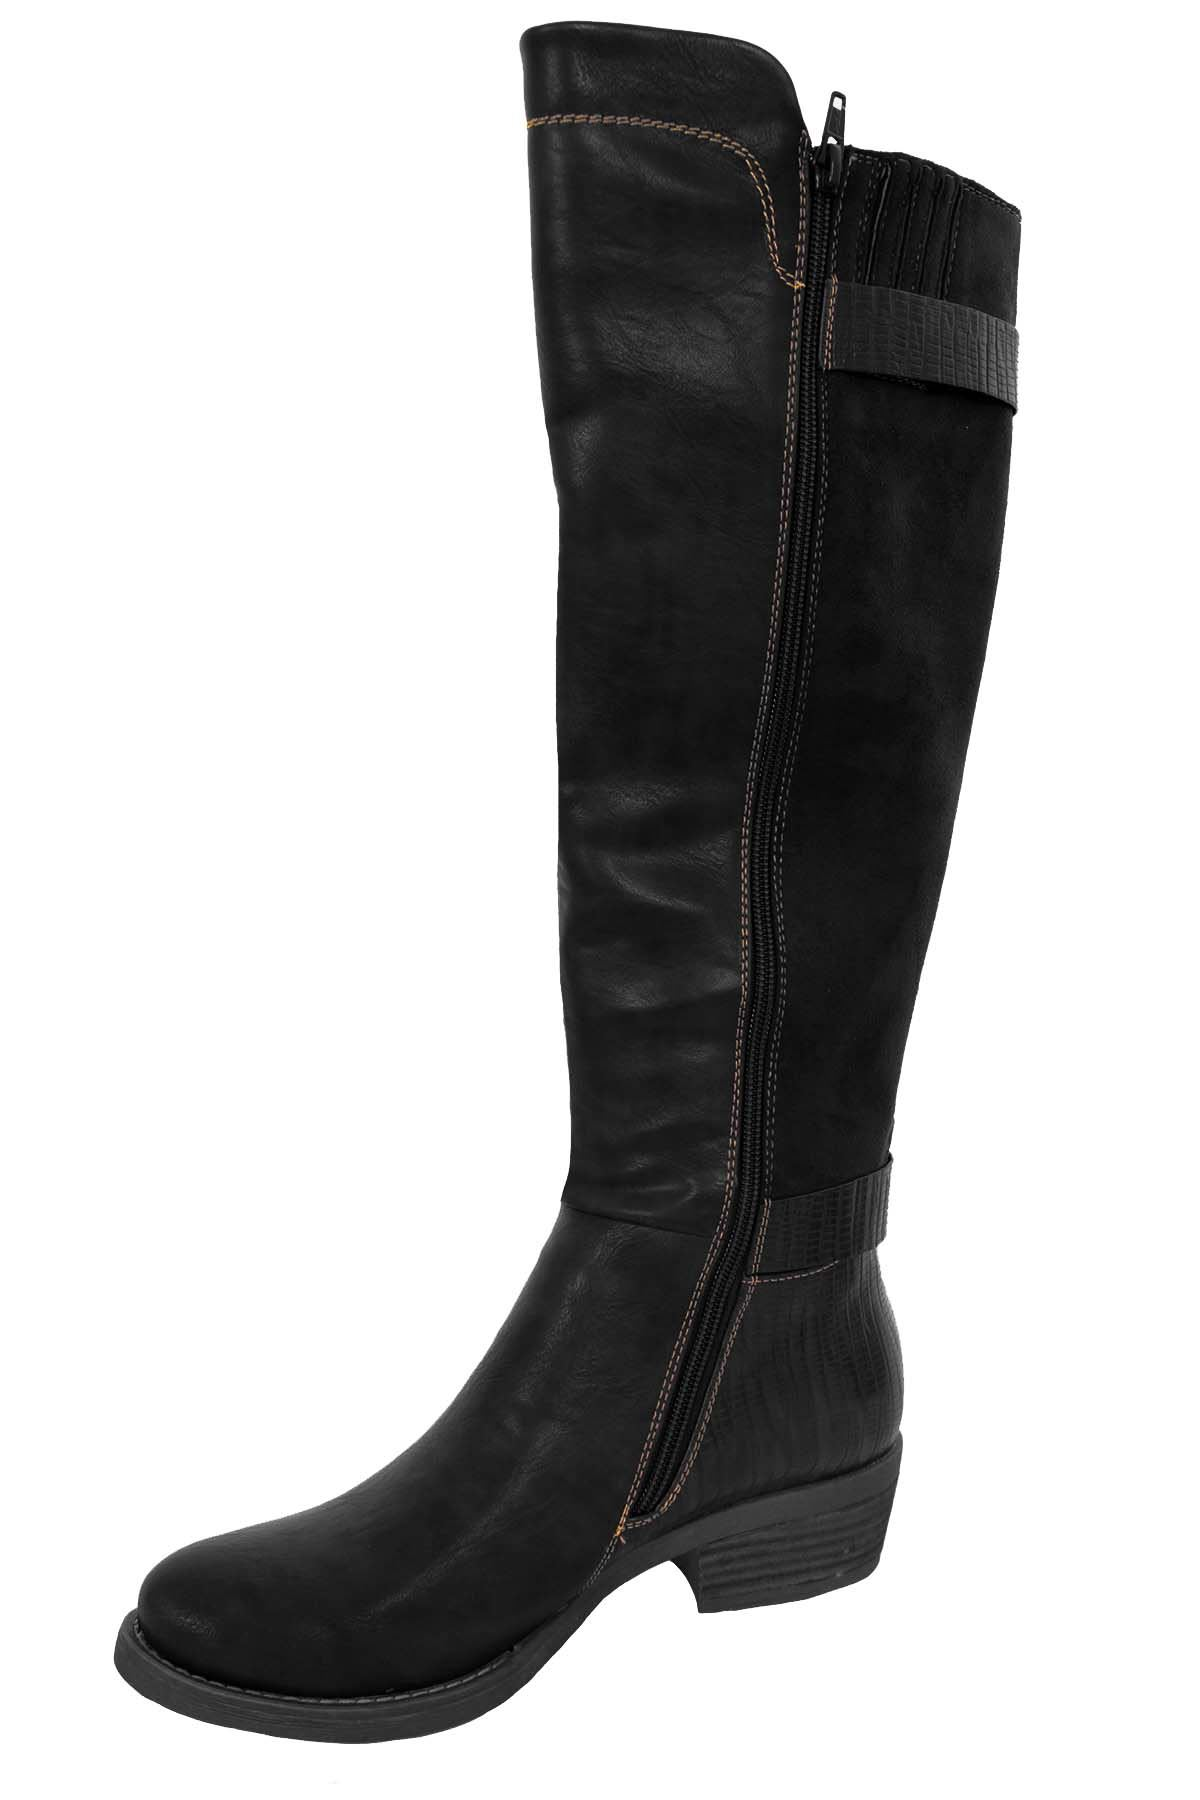 Womens-Faux-Leather-Suede-Contrast-Calf-High-Zipper-Buckle-Low-Heel-Boots